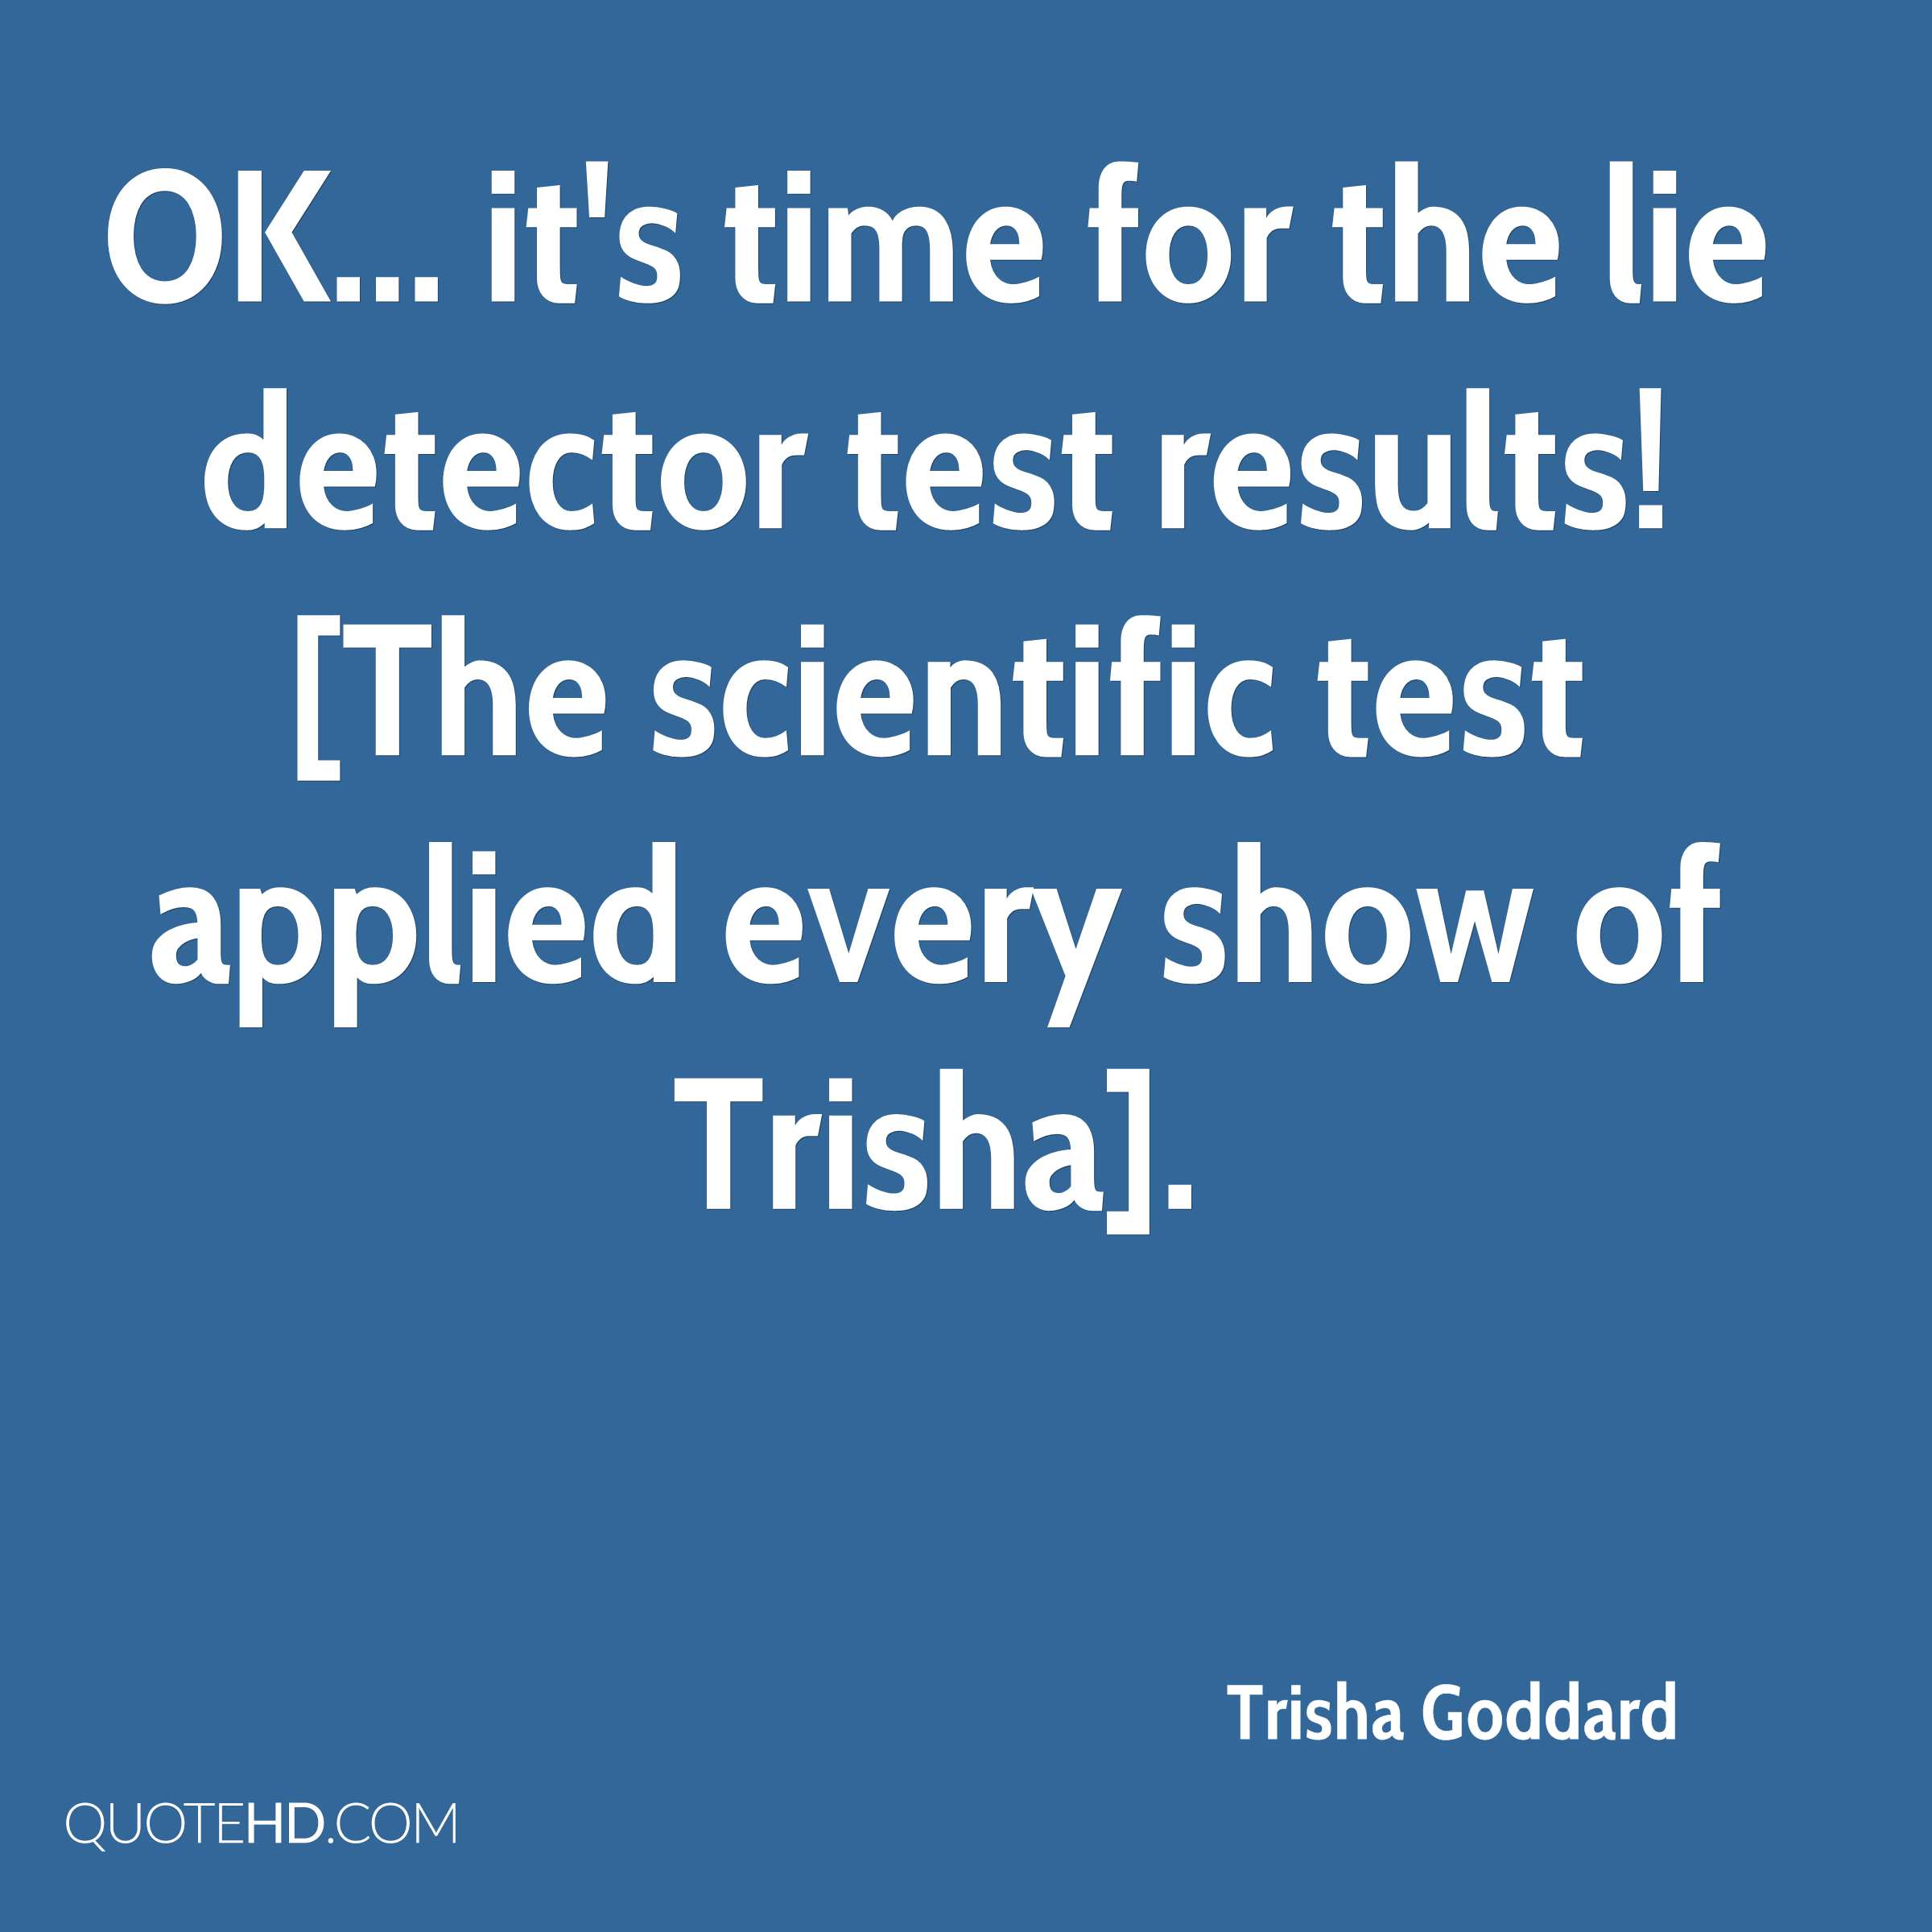 OK... it's time for the lie detector test results! [The scientific test applied every show of Trisha].